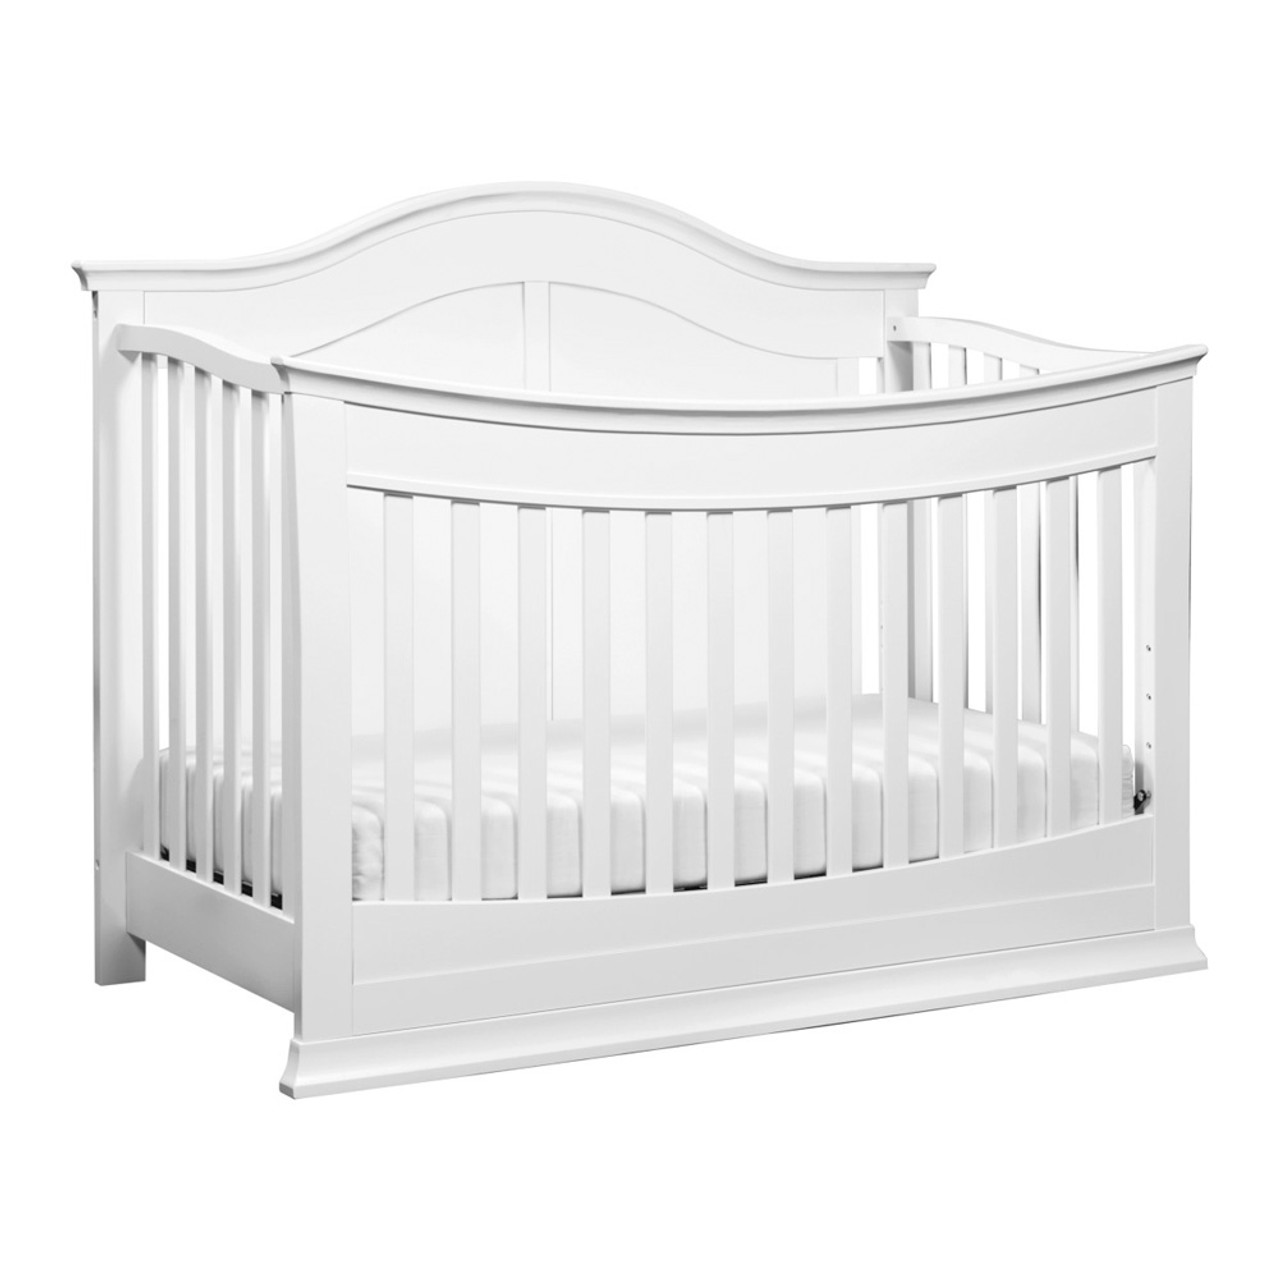 Davinci Meadow 4 In 1 Convertible Crib With Toddler Bed Conversion Kit White Dear Born Baby